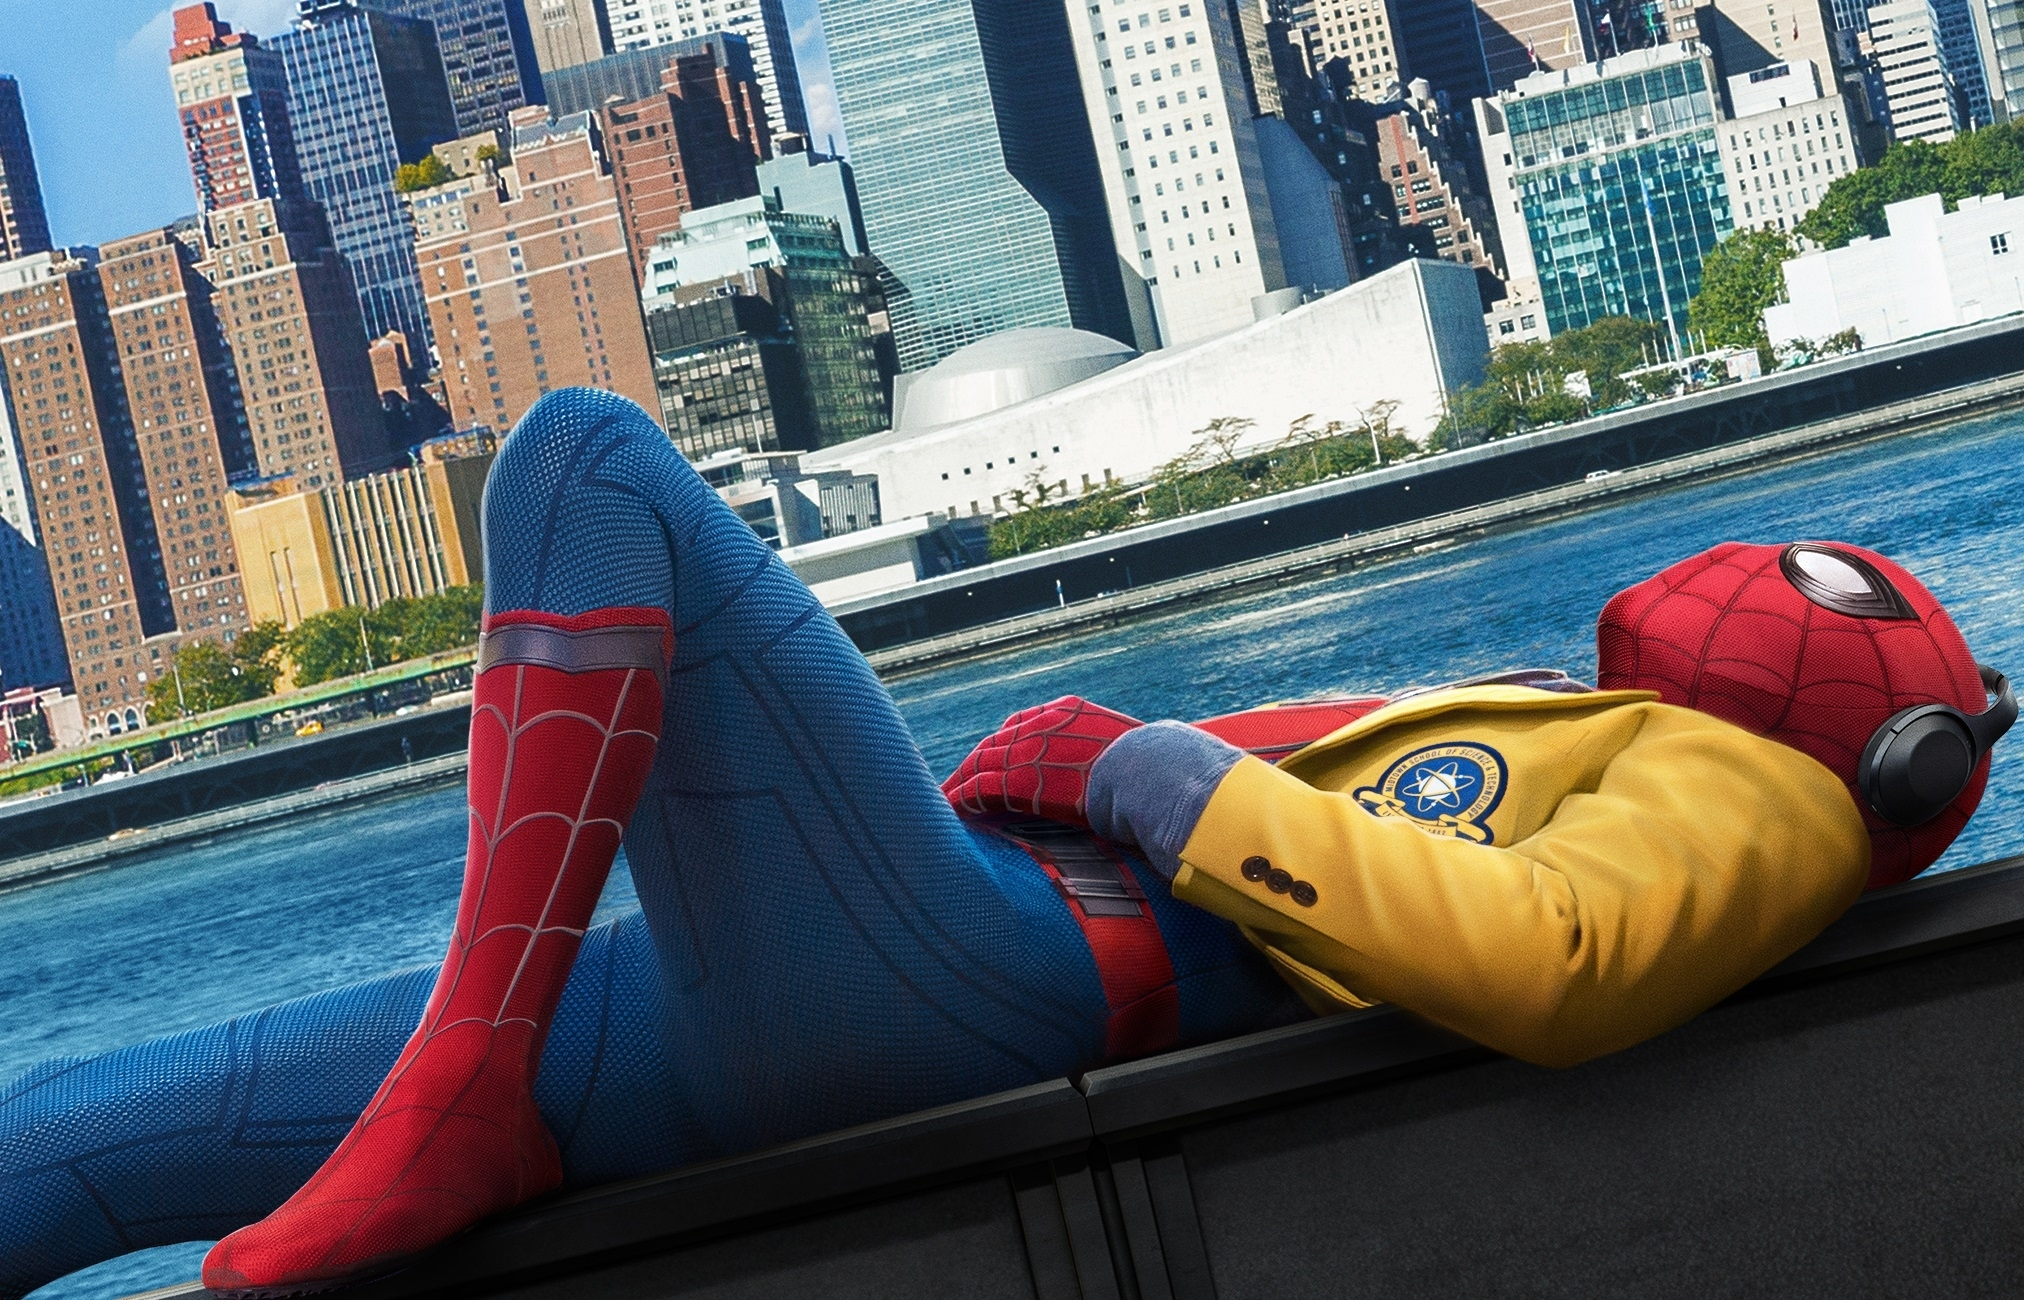 84 spider-man: homecoming fonds d'écran hd | arrière-plans